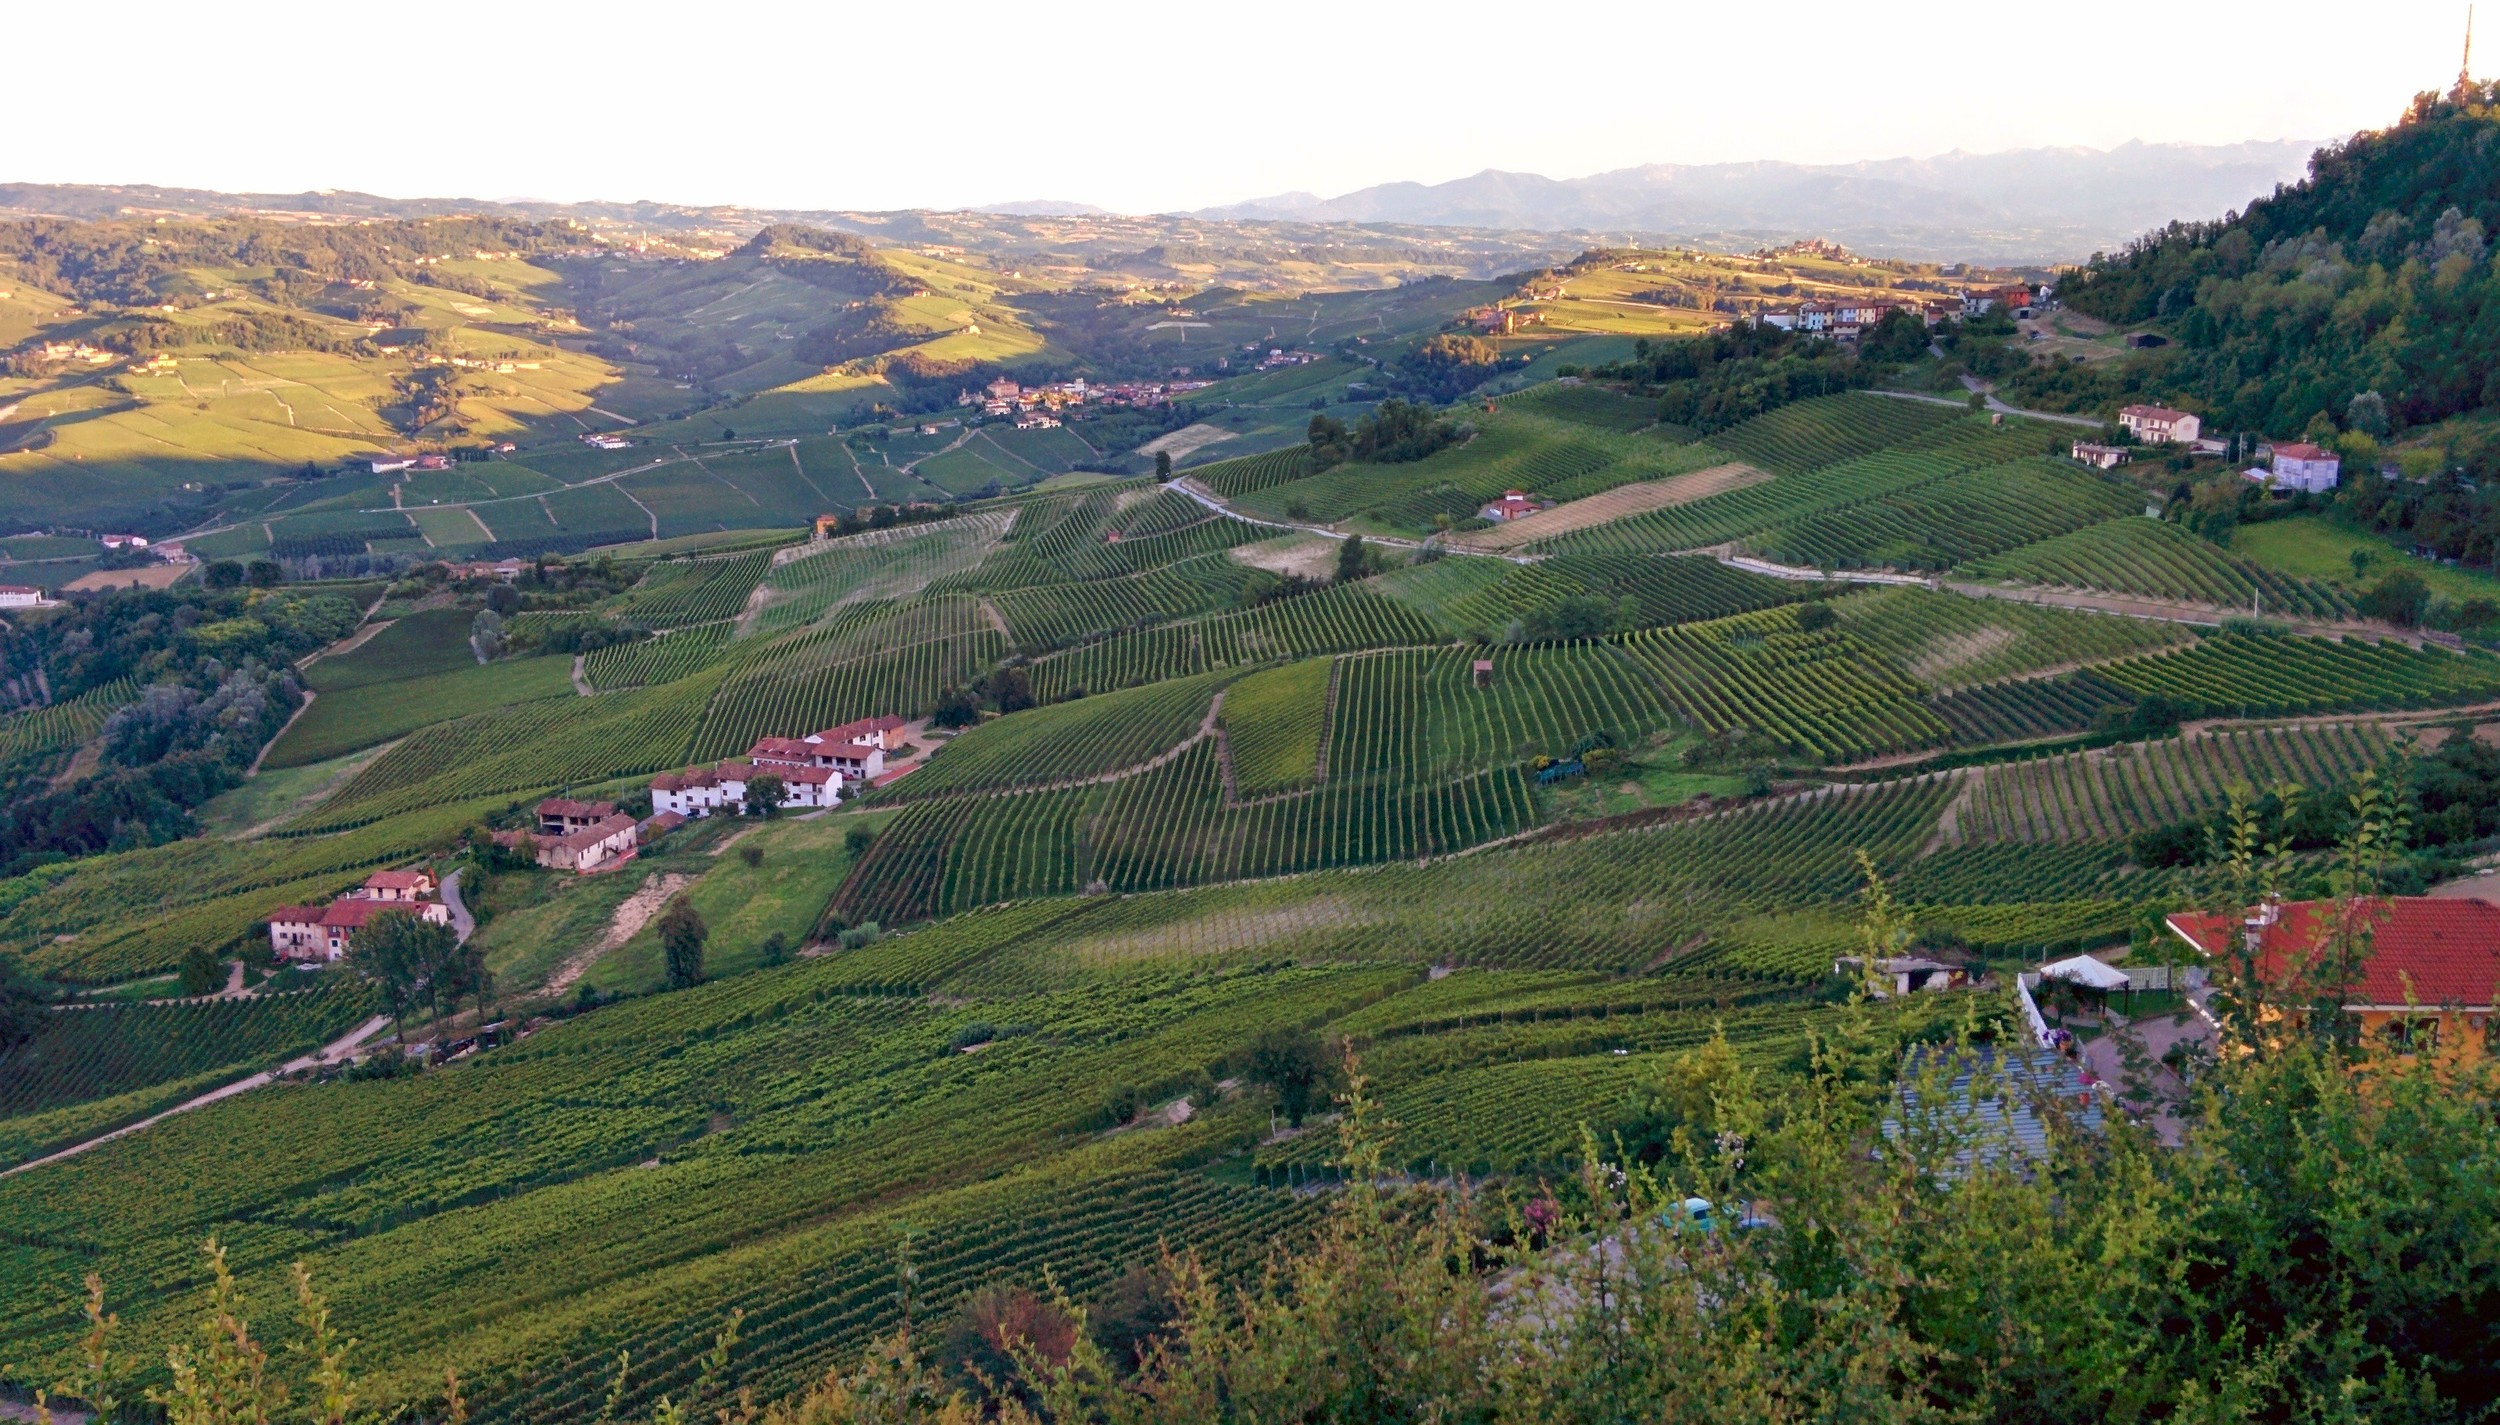 from the peak of la morra, the view of barolo, the hilltop in the distance on the right